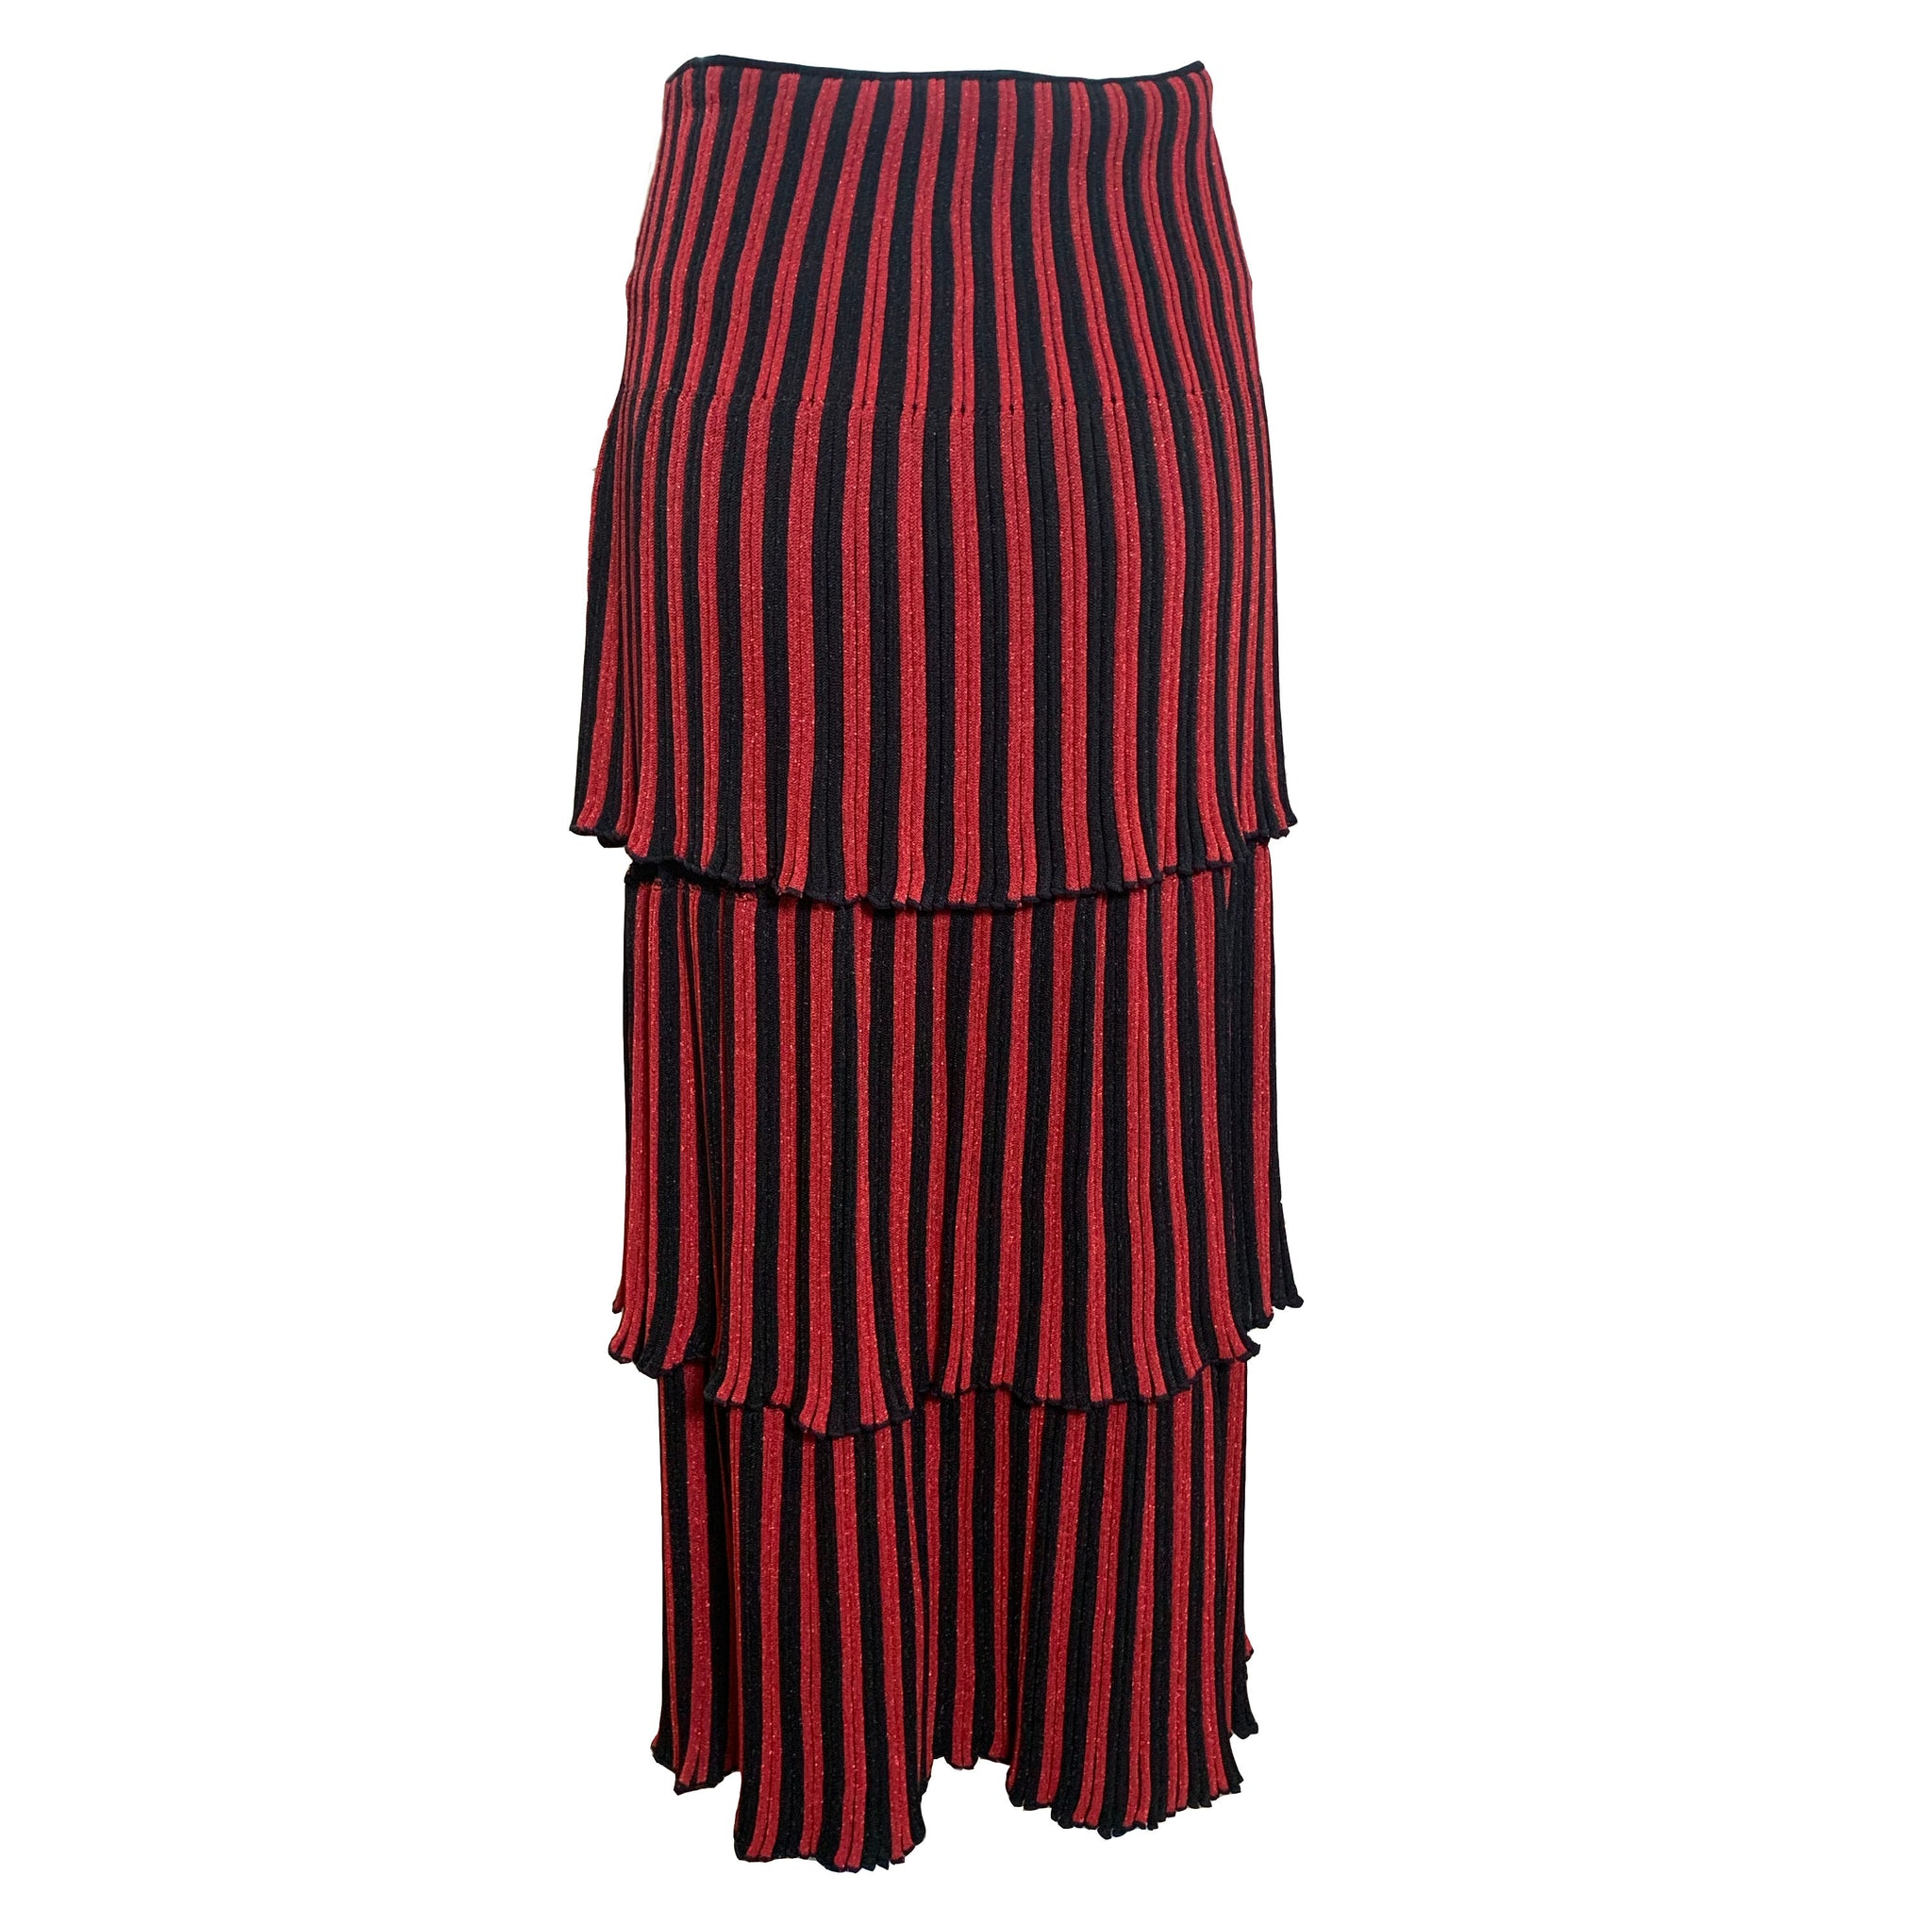 Sonia Rykiel 80s Red and Black Striped Tiered Knit Midi Skirt BACK 3 of 4